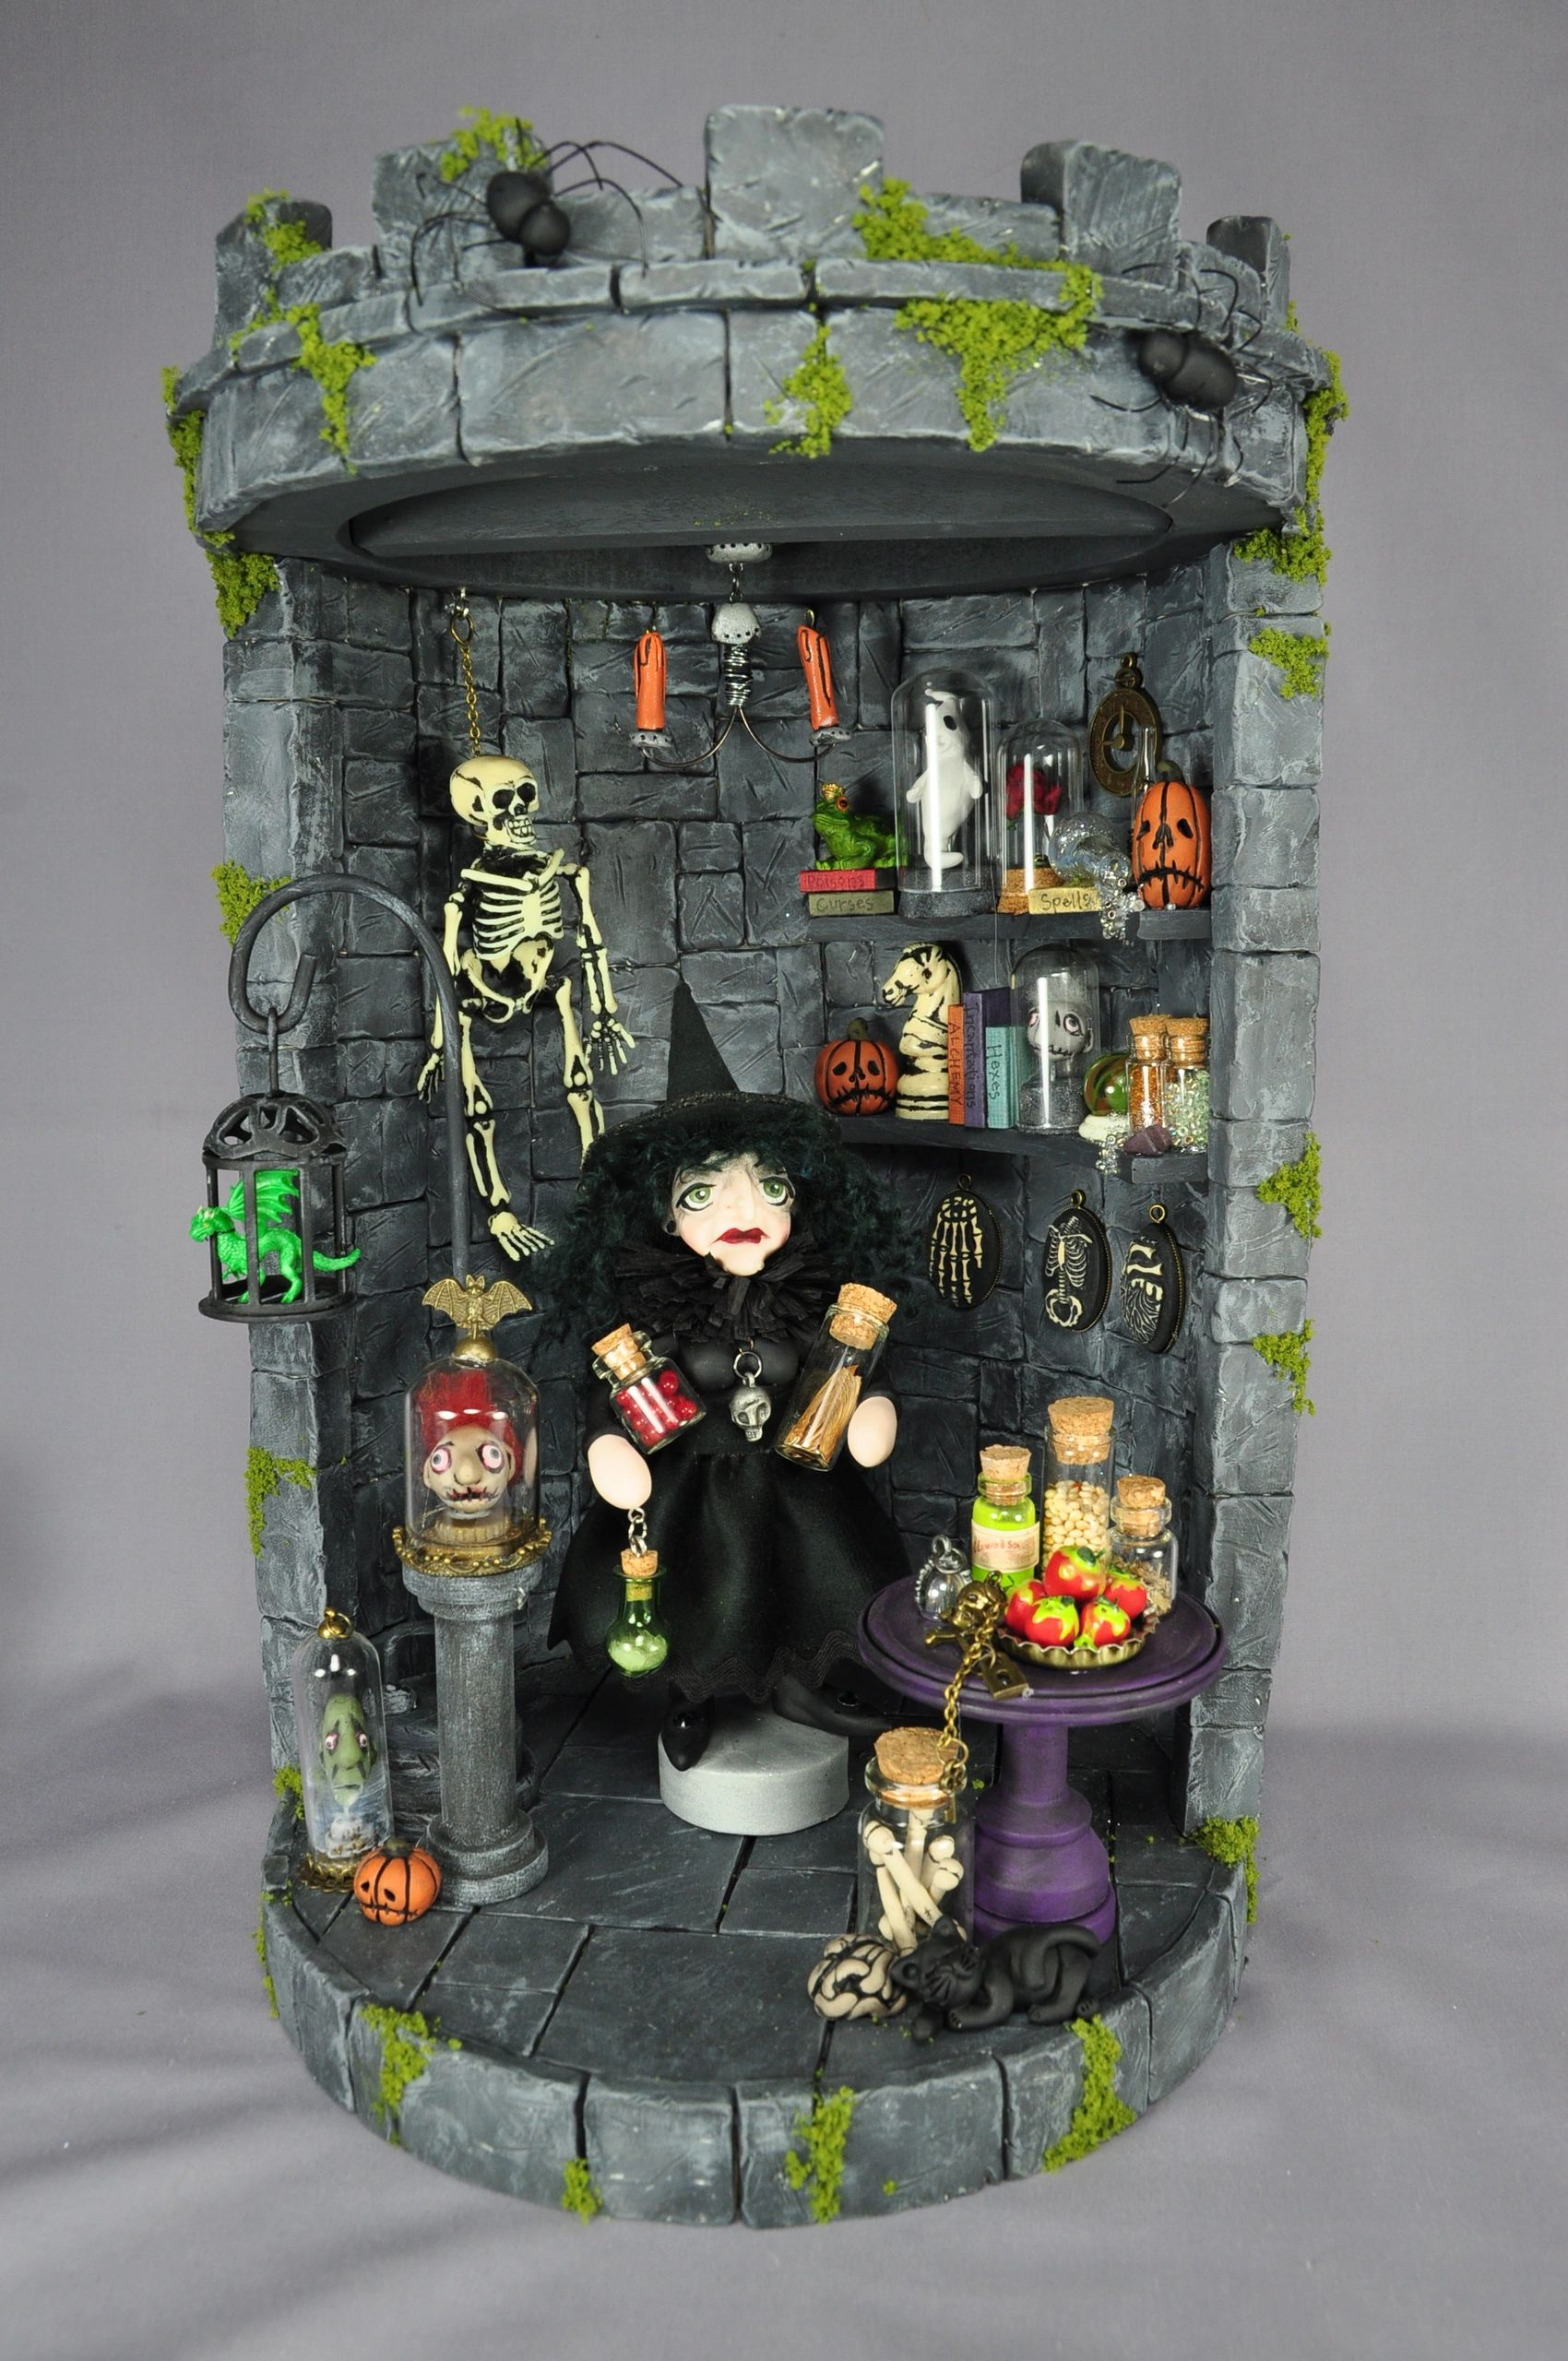 Intricately detailed mixed-media castle shadow box vignette with wicked witch polymer clay art doll